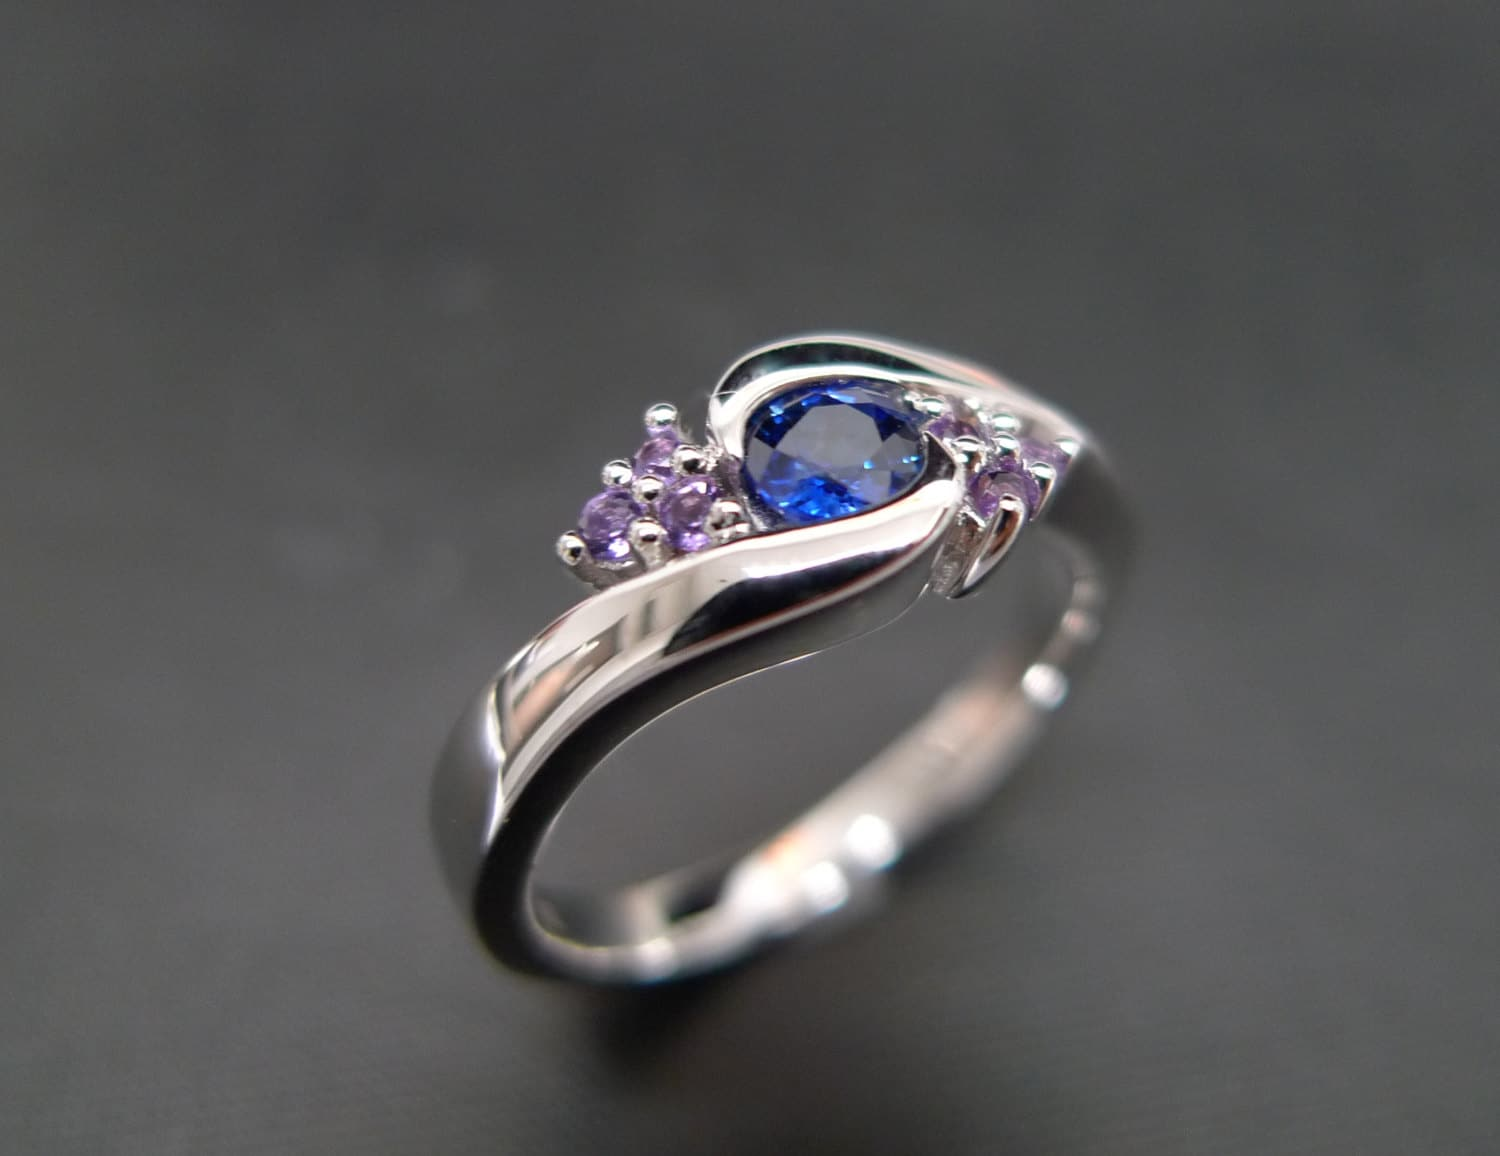 dam purple in platinum ring setting a rings bpid amethyst and diamond your own pt engagement design vintage